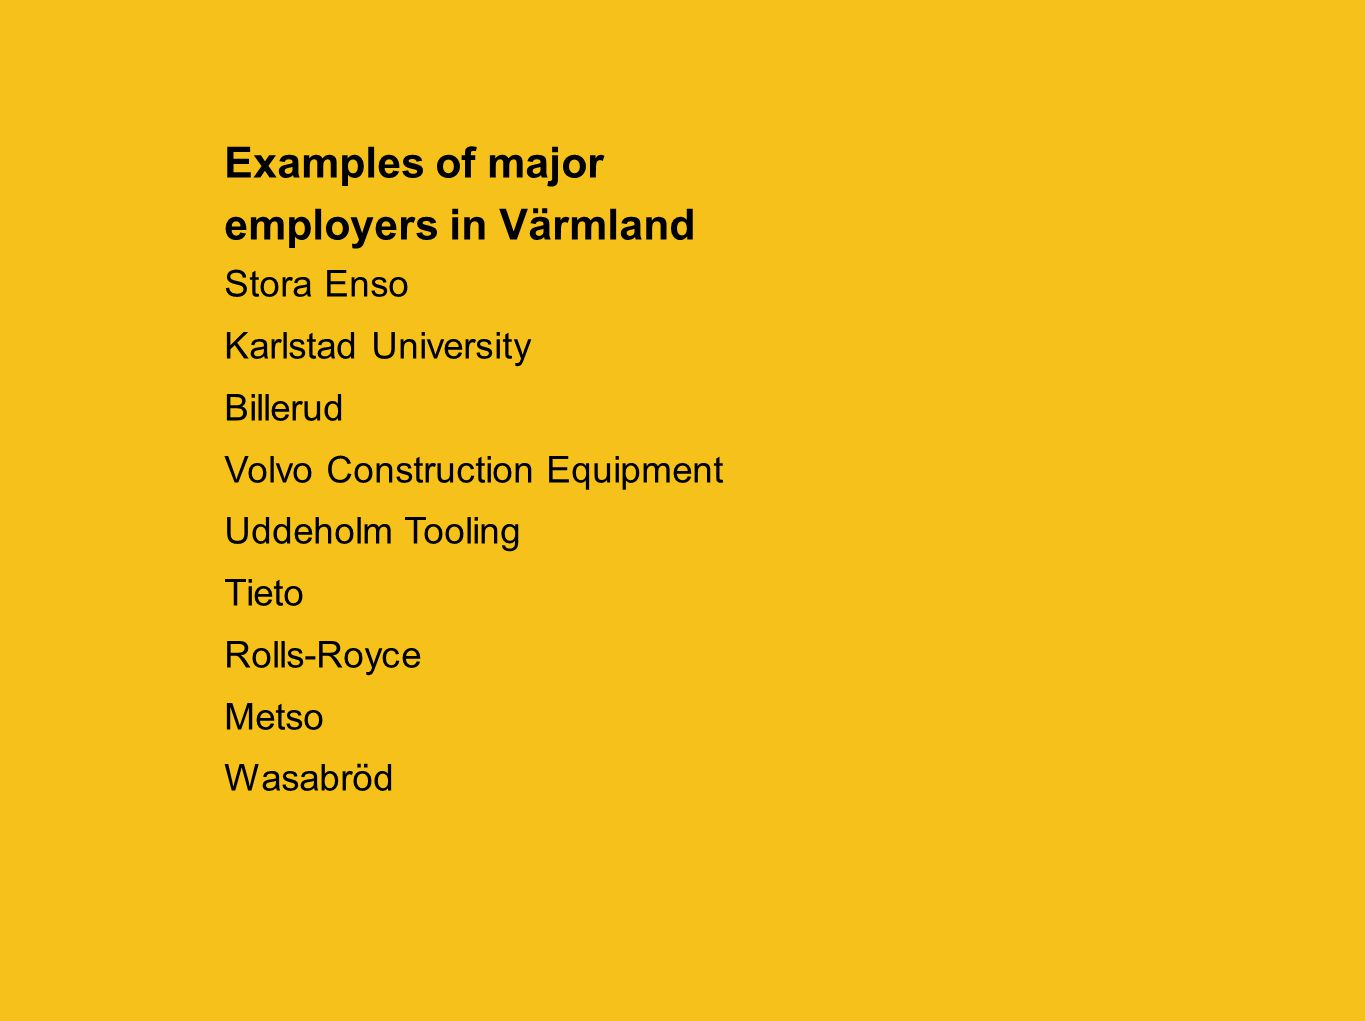 Examples of major employers in Värmland Stora Enso Karlstad University